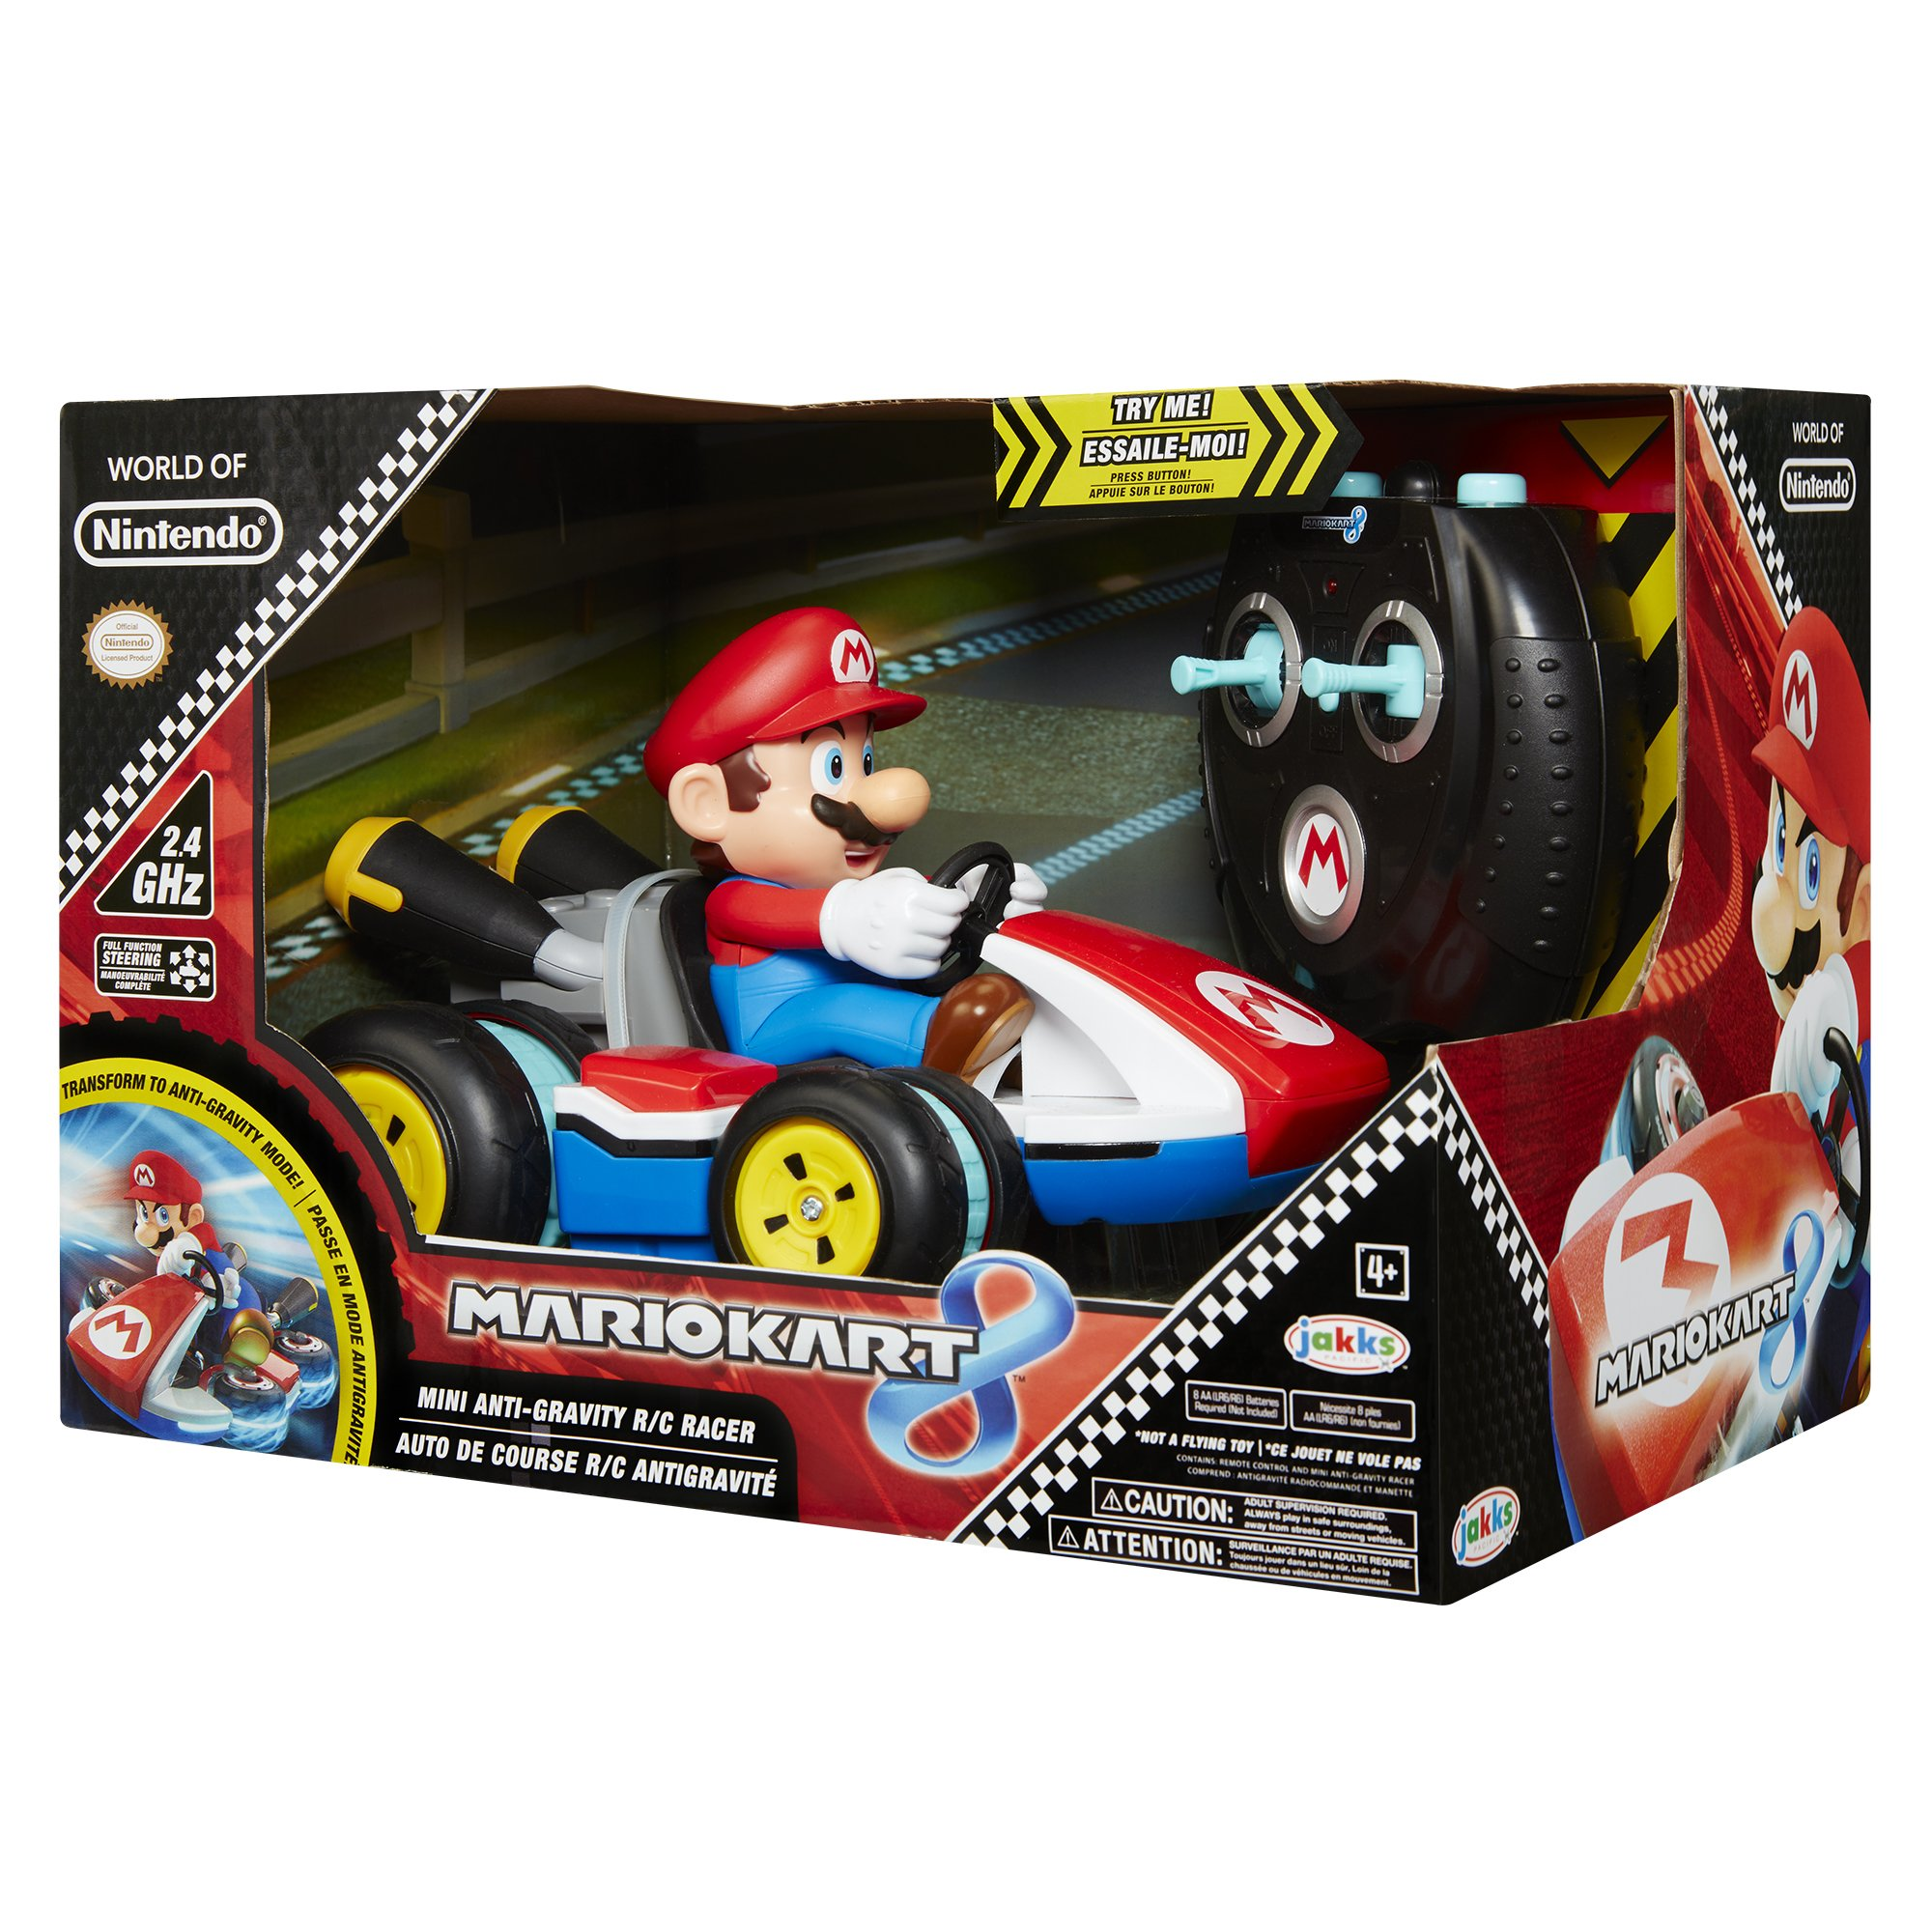 NINTENDO Super Mario Kart 8 Mario Anti-Gravity Mini RC Racer 2.4Ghz by Nintendo (Image #7)